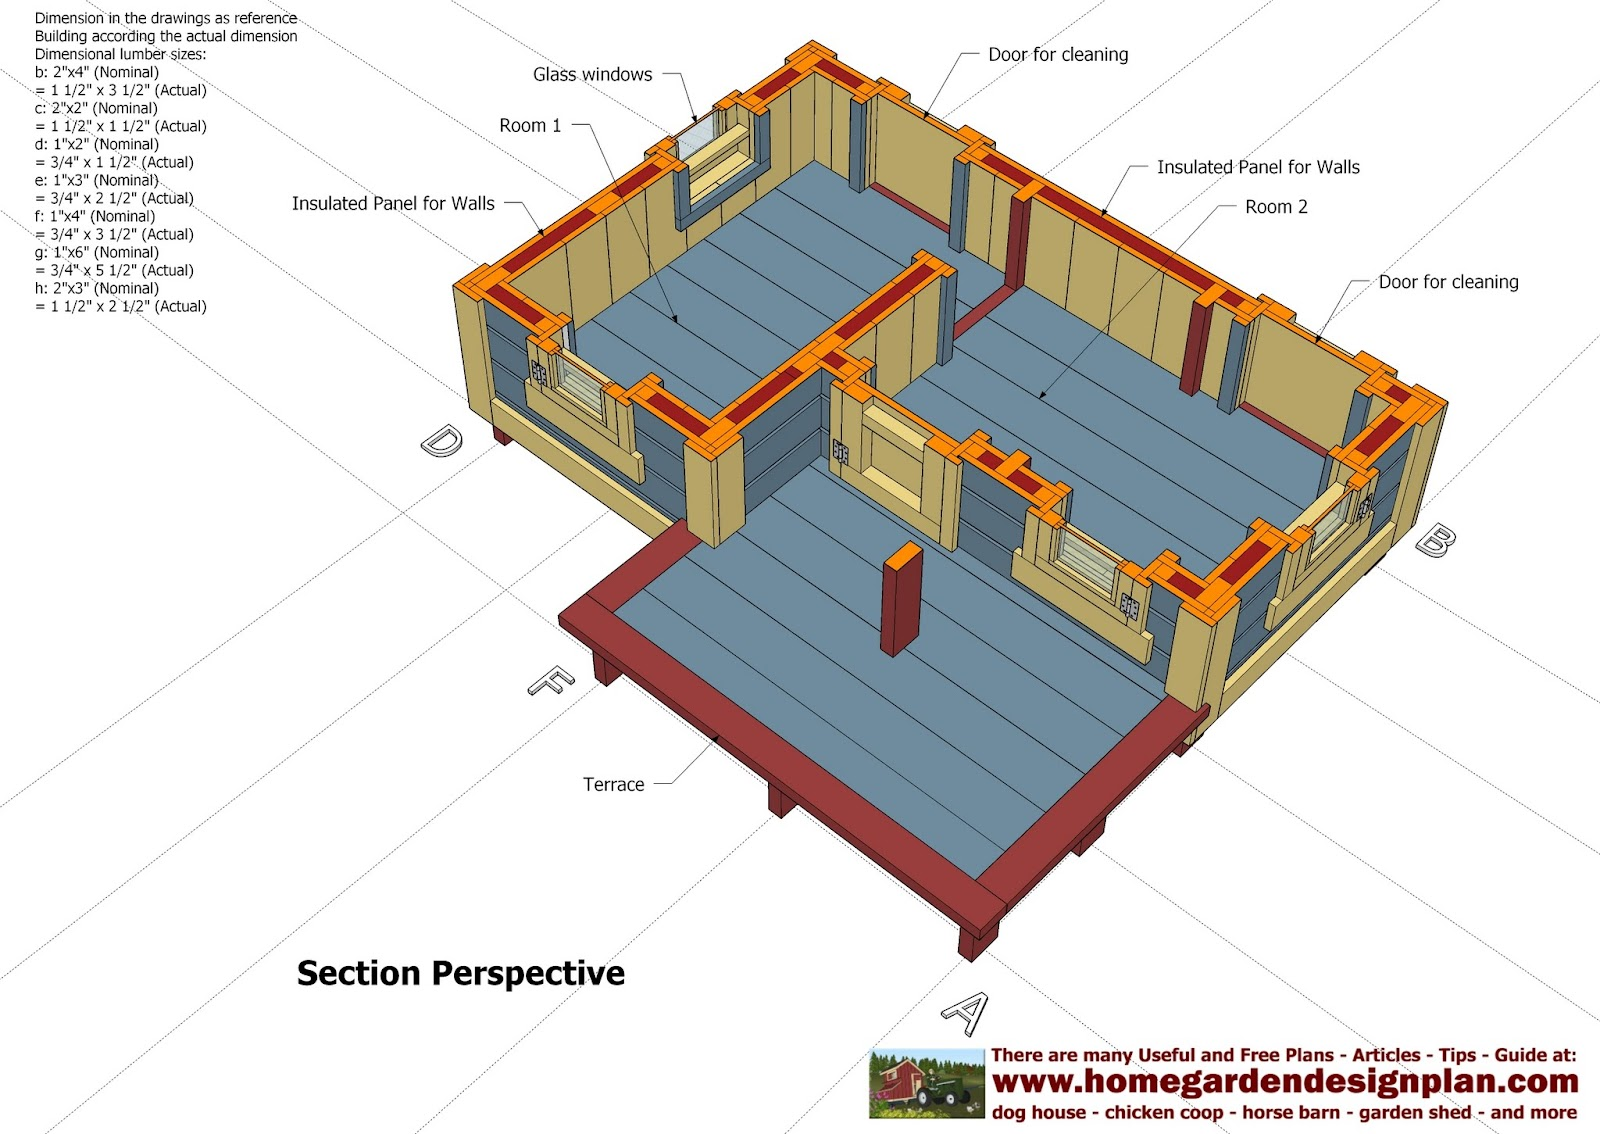 Home garden plans dh303 dog house plans dog house design insulated dog house - Hiring a home designer saves much money and time ...